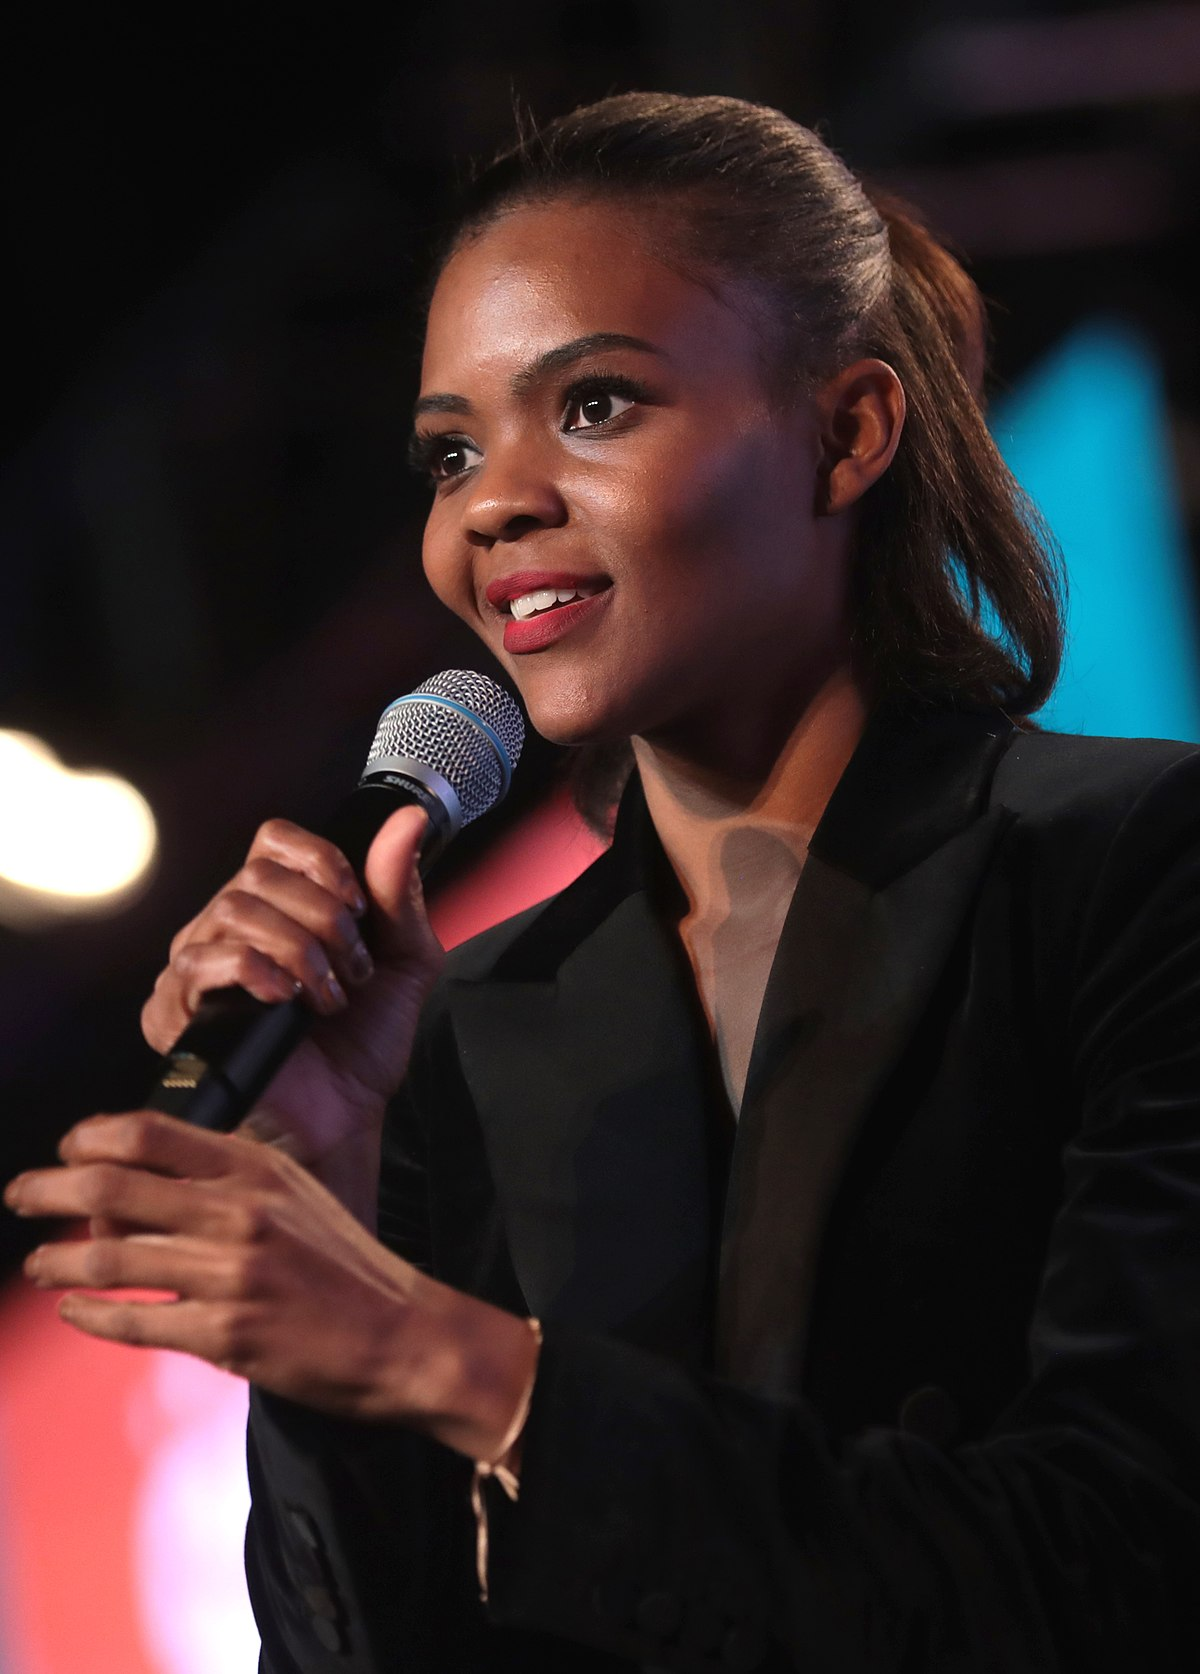 1200px-Candace_Owens_by_Gage_Skidmore_3